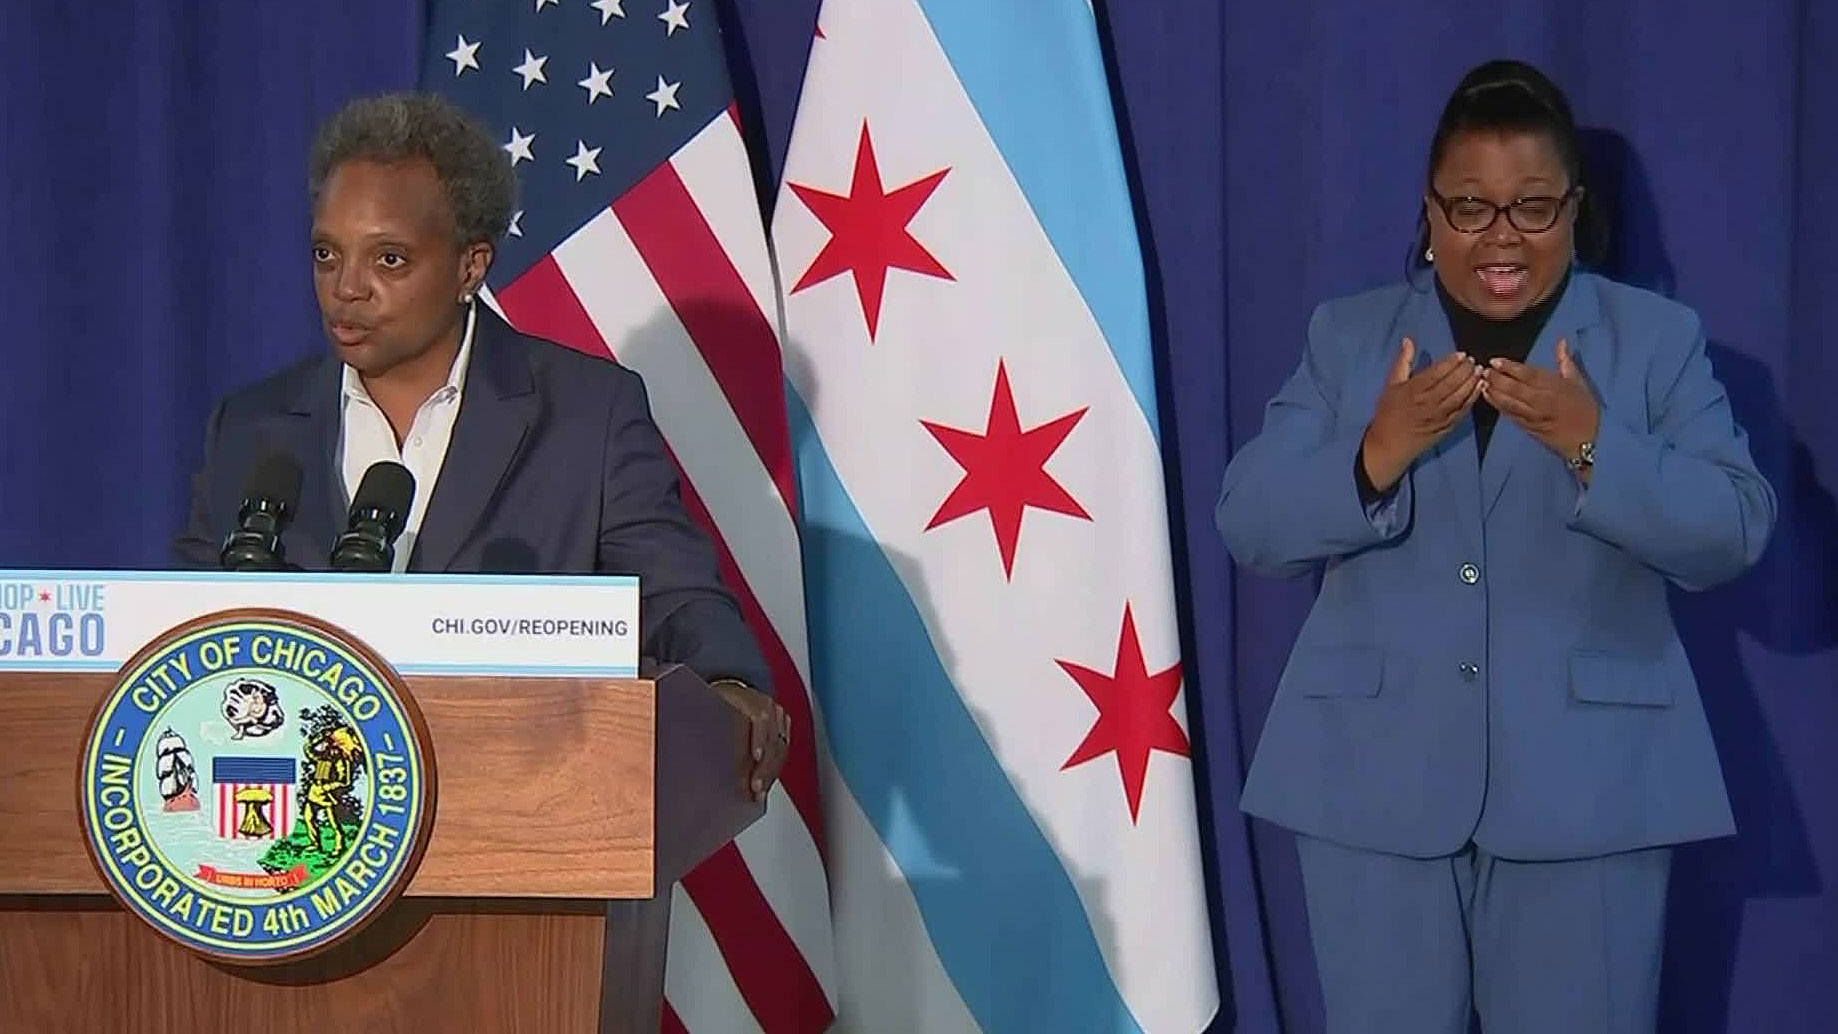 Chicago Mayor Lori Lightfoot speaks during a news conference on Monday.